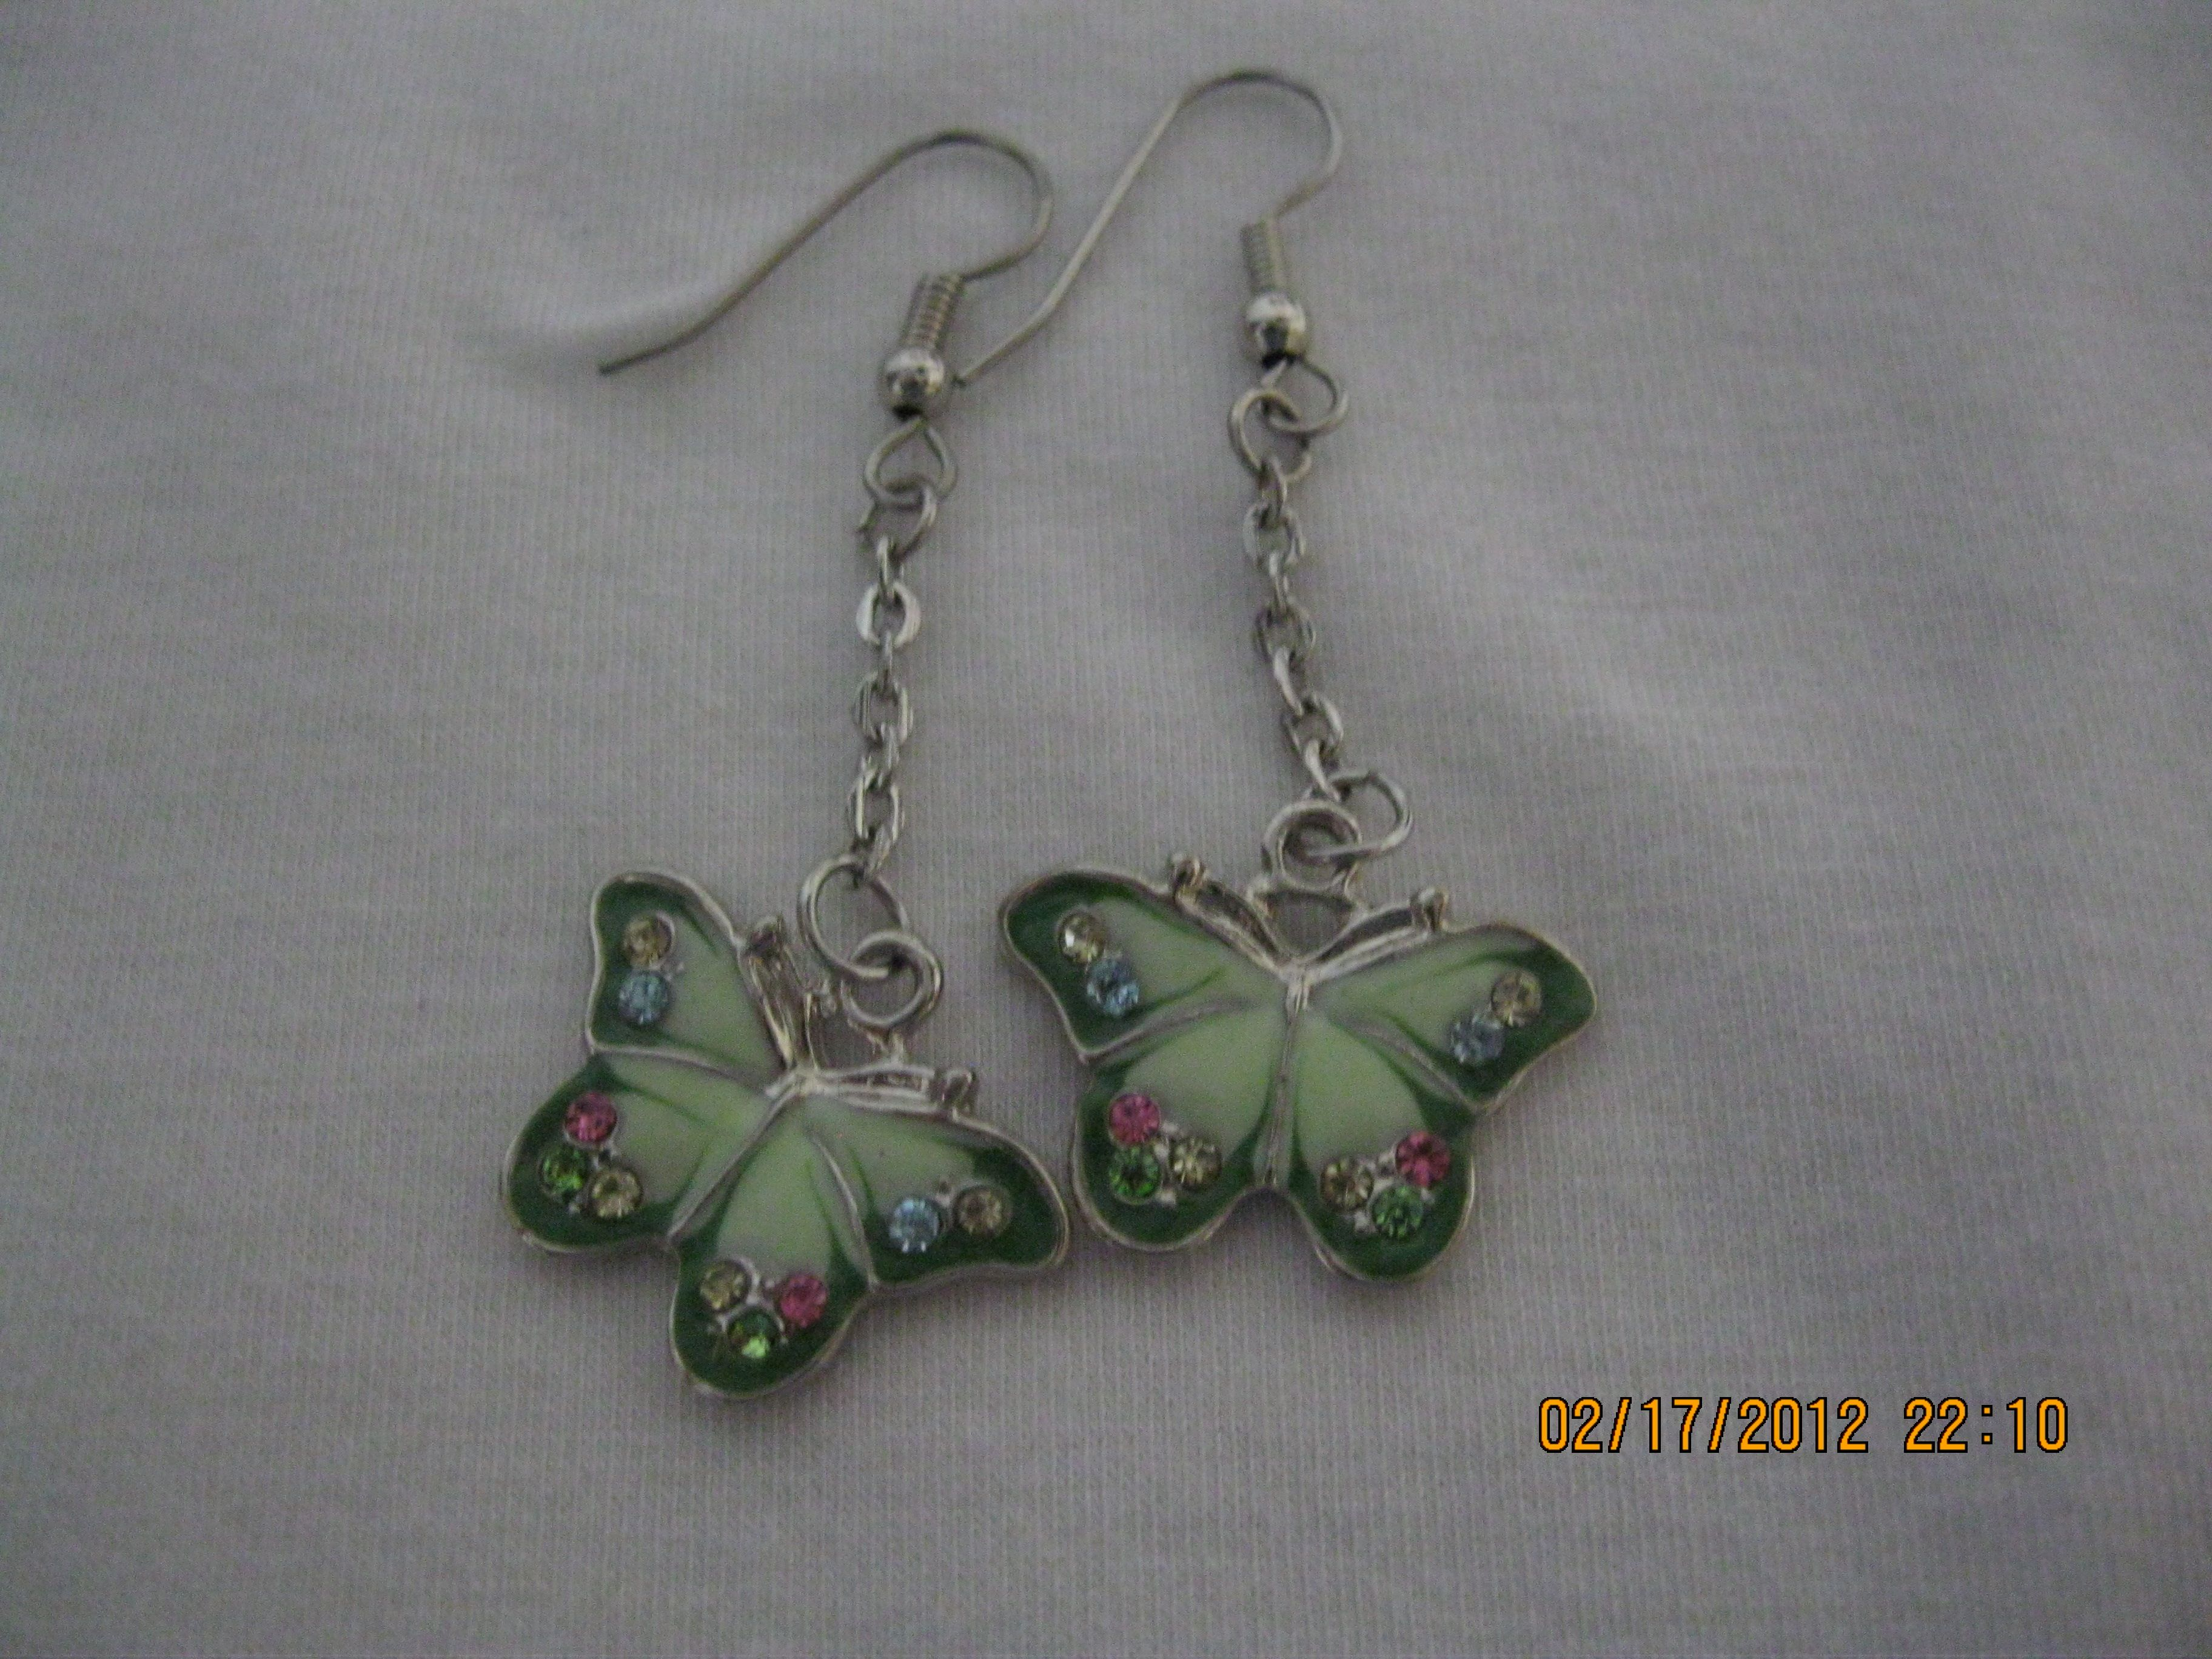 I like butterflies, too. I must like green since I seem to make a lot with it.